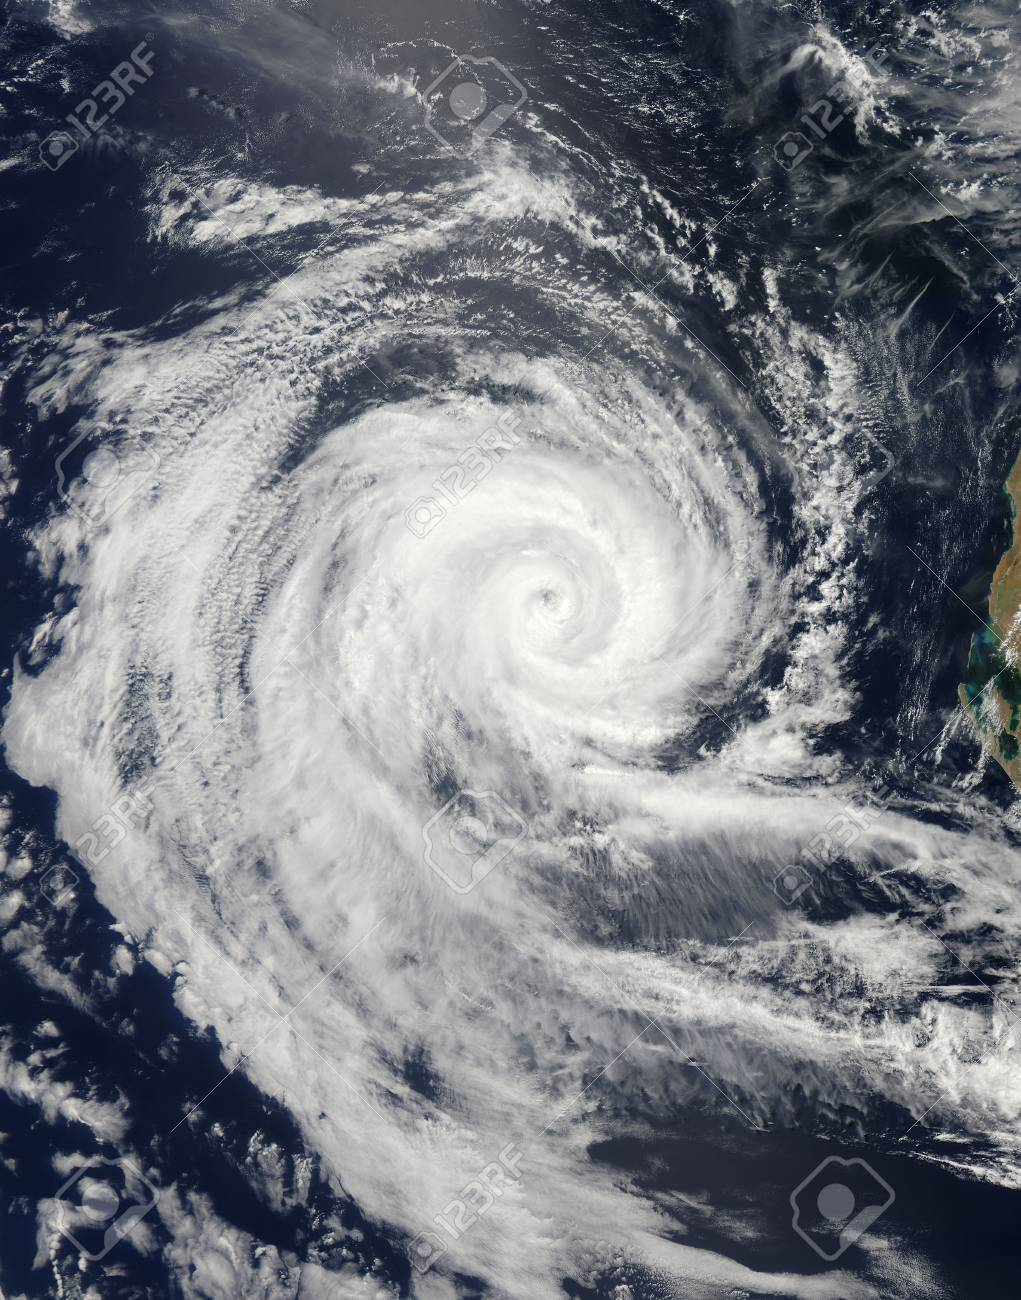 hight resolution of february 20 2011 the eye of severe tropical cyclone dianne swirled in the indian ocean as storm bands lashed the waters and also blew across the land